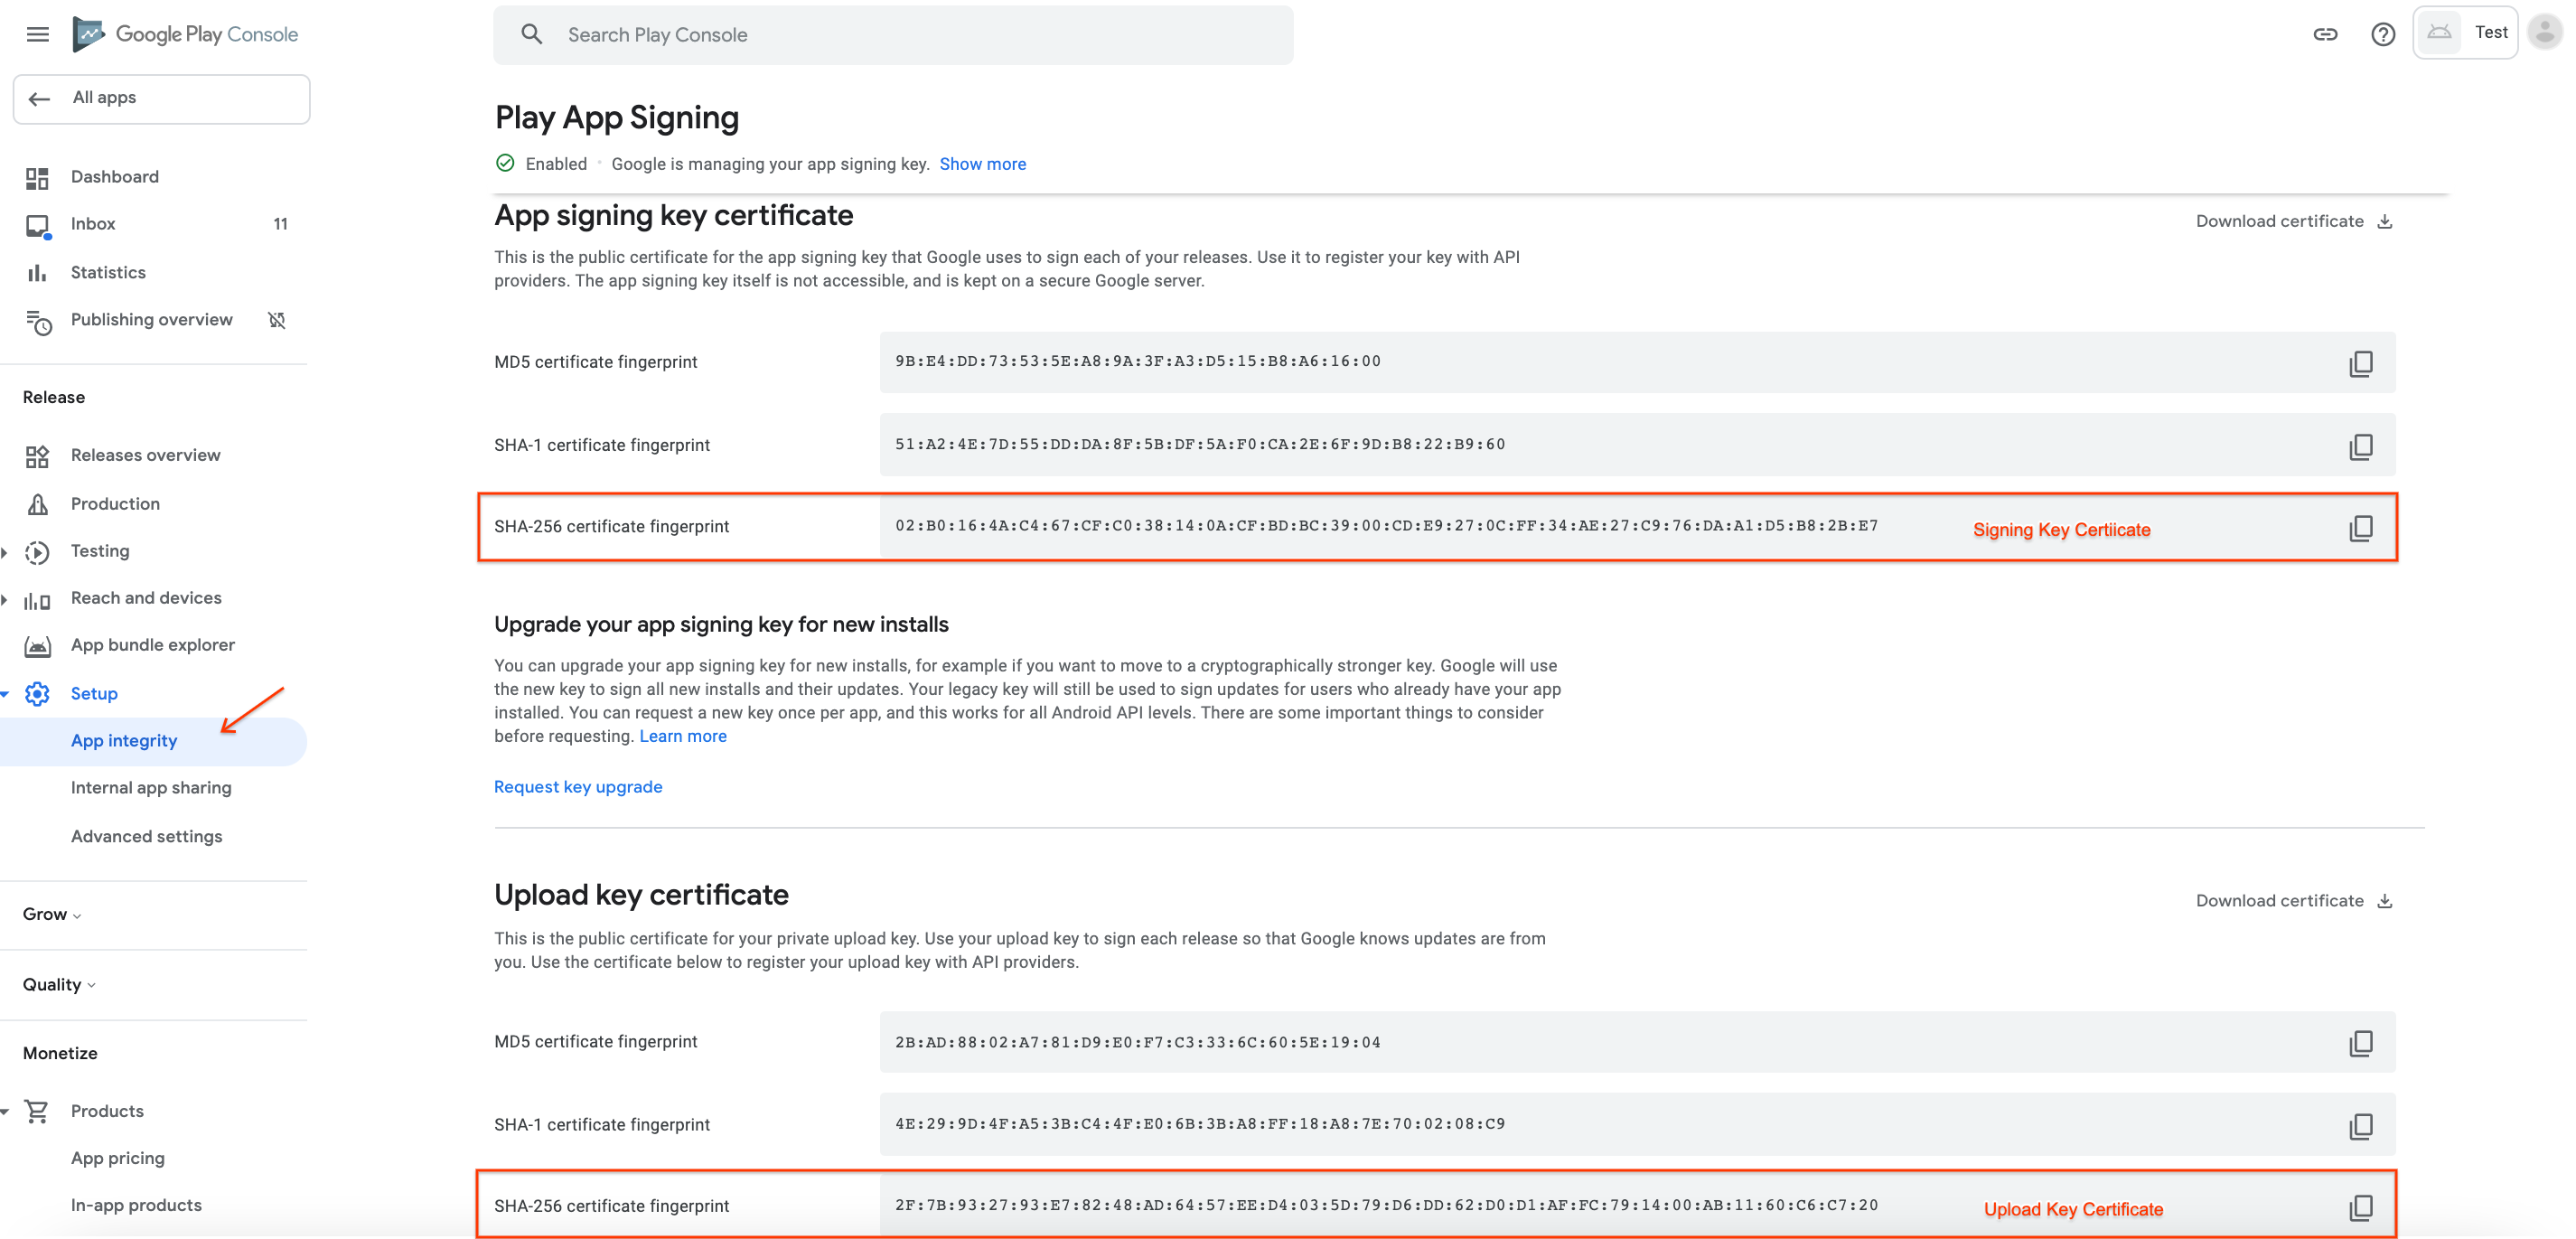 Retrieve the appropriate SHA256 certificate fingerprint for your signing or upload key